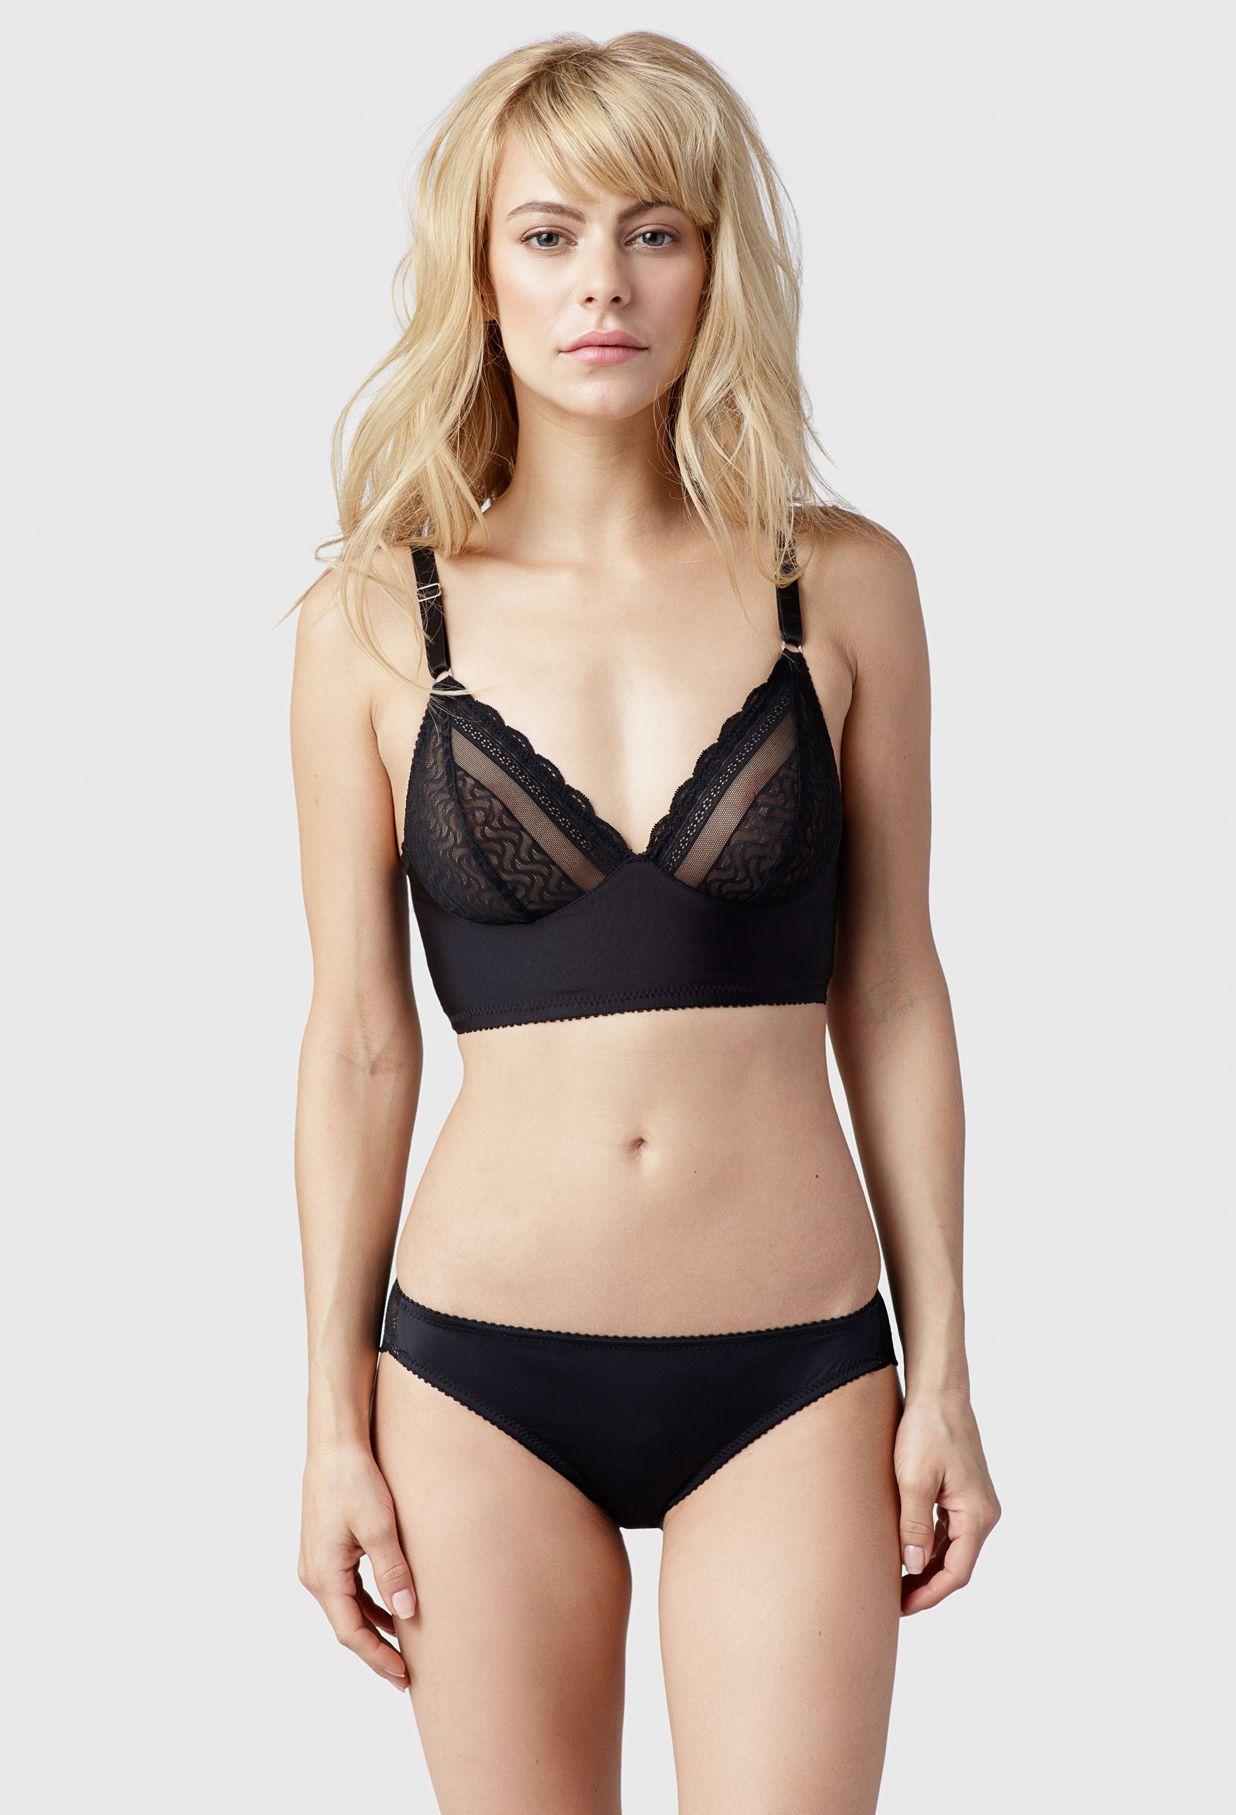 01d10be687 Fortnight Lingerie s Ivy Longline is a wire-free bra